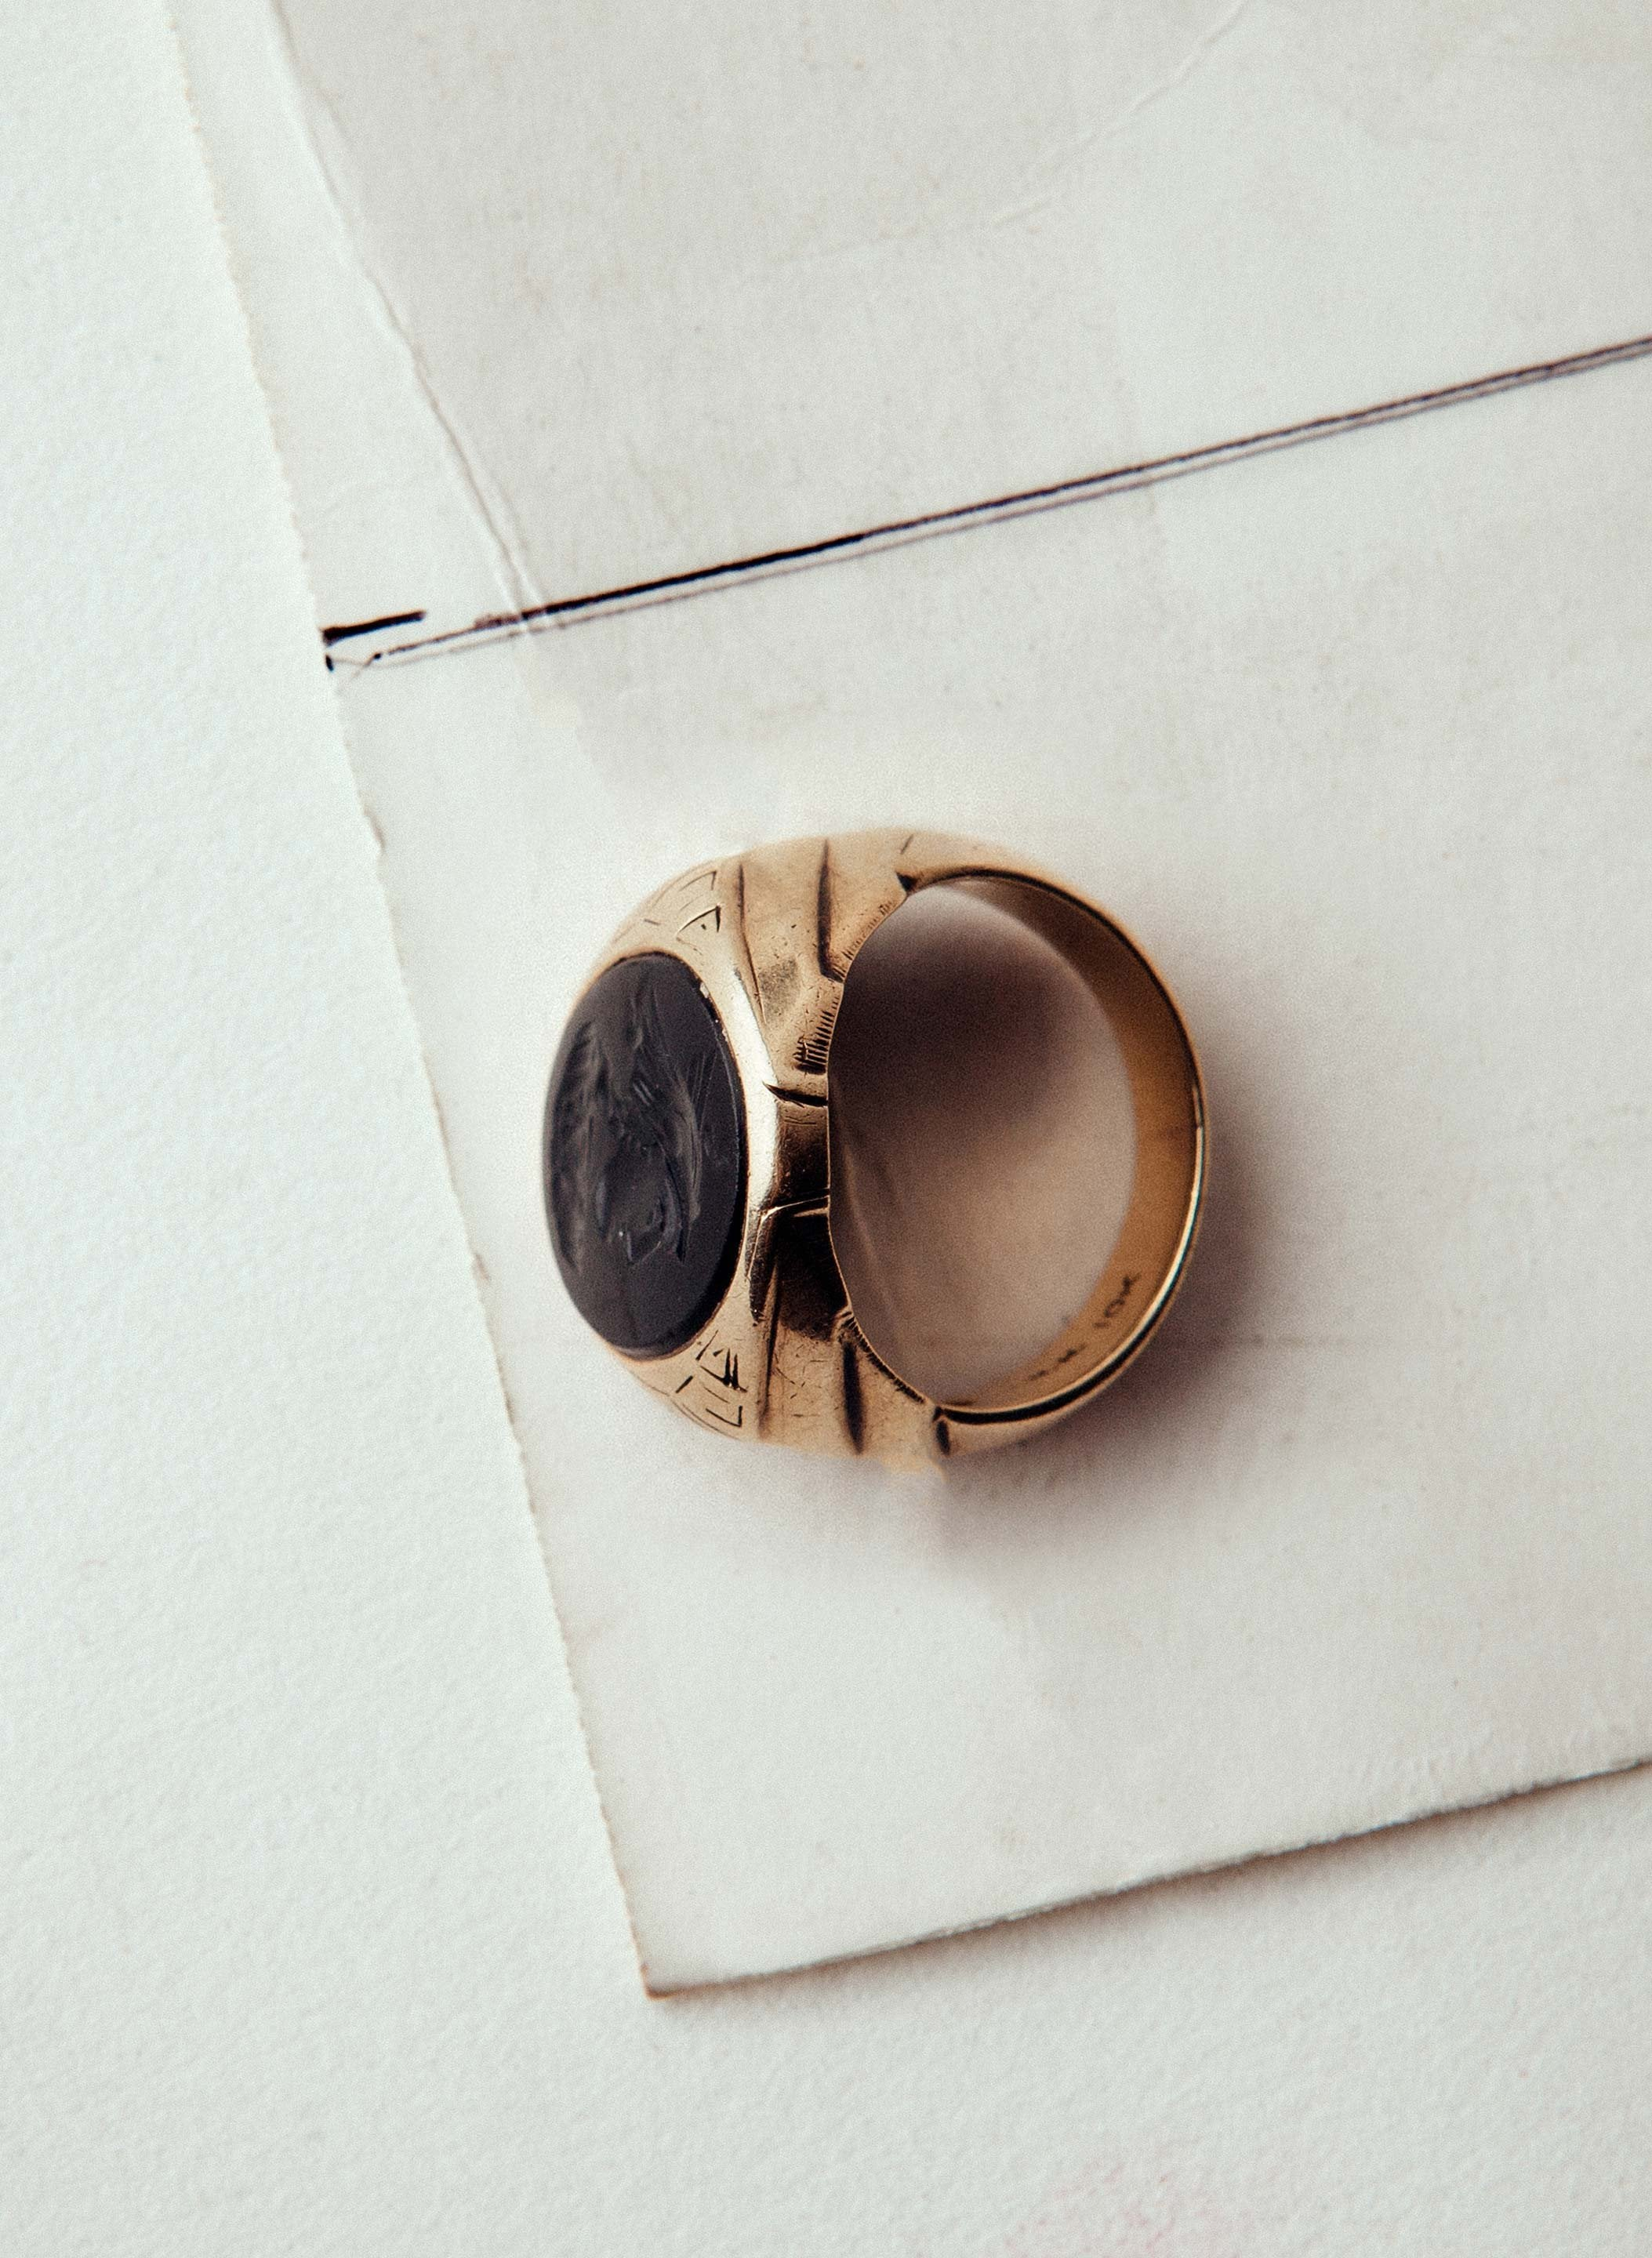 imogene + willie - vintage trojan gold signet ring